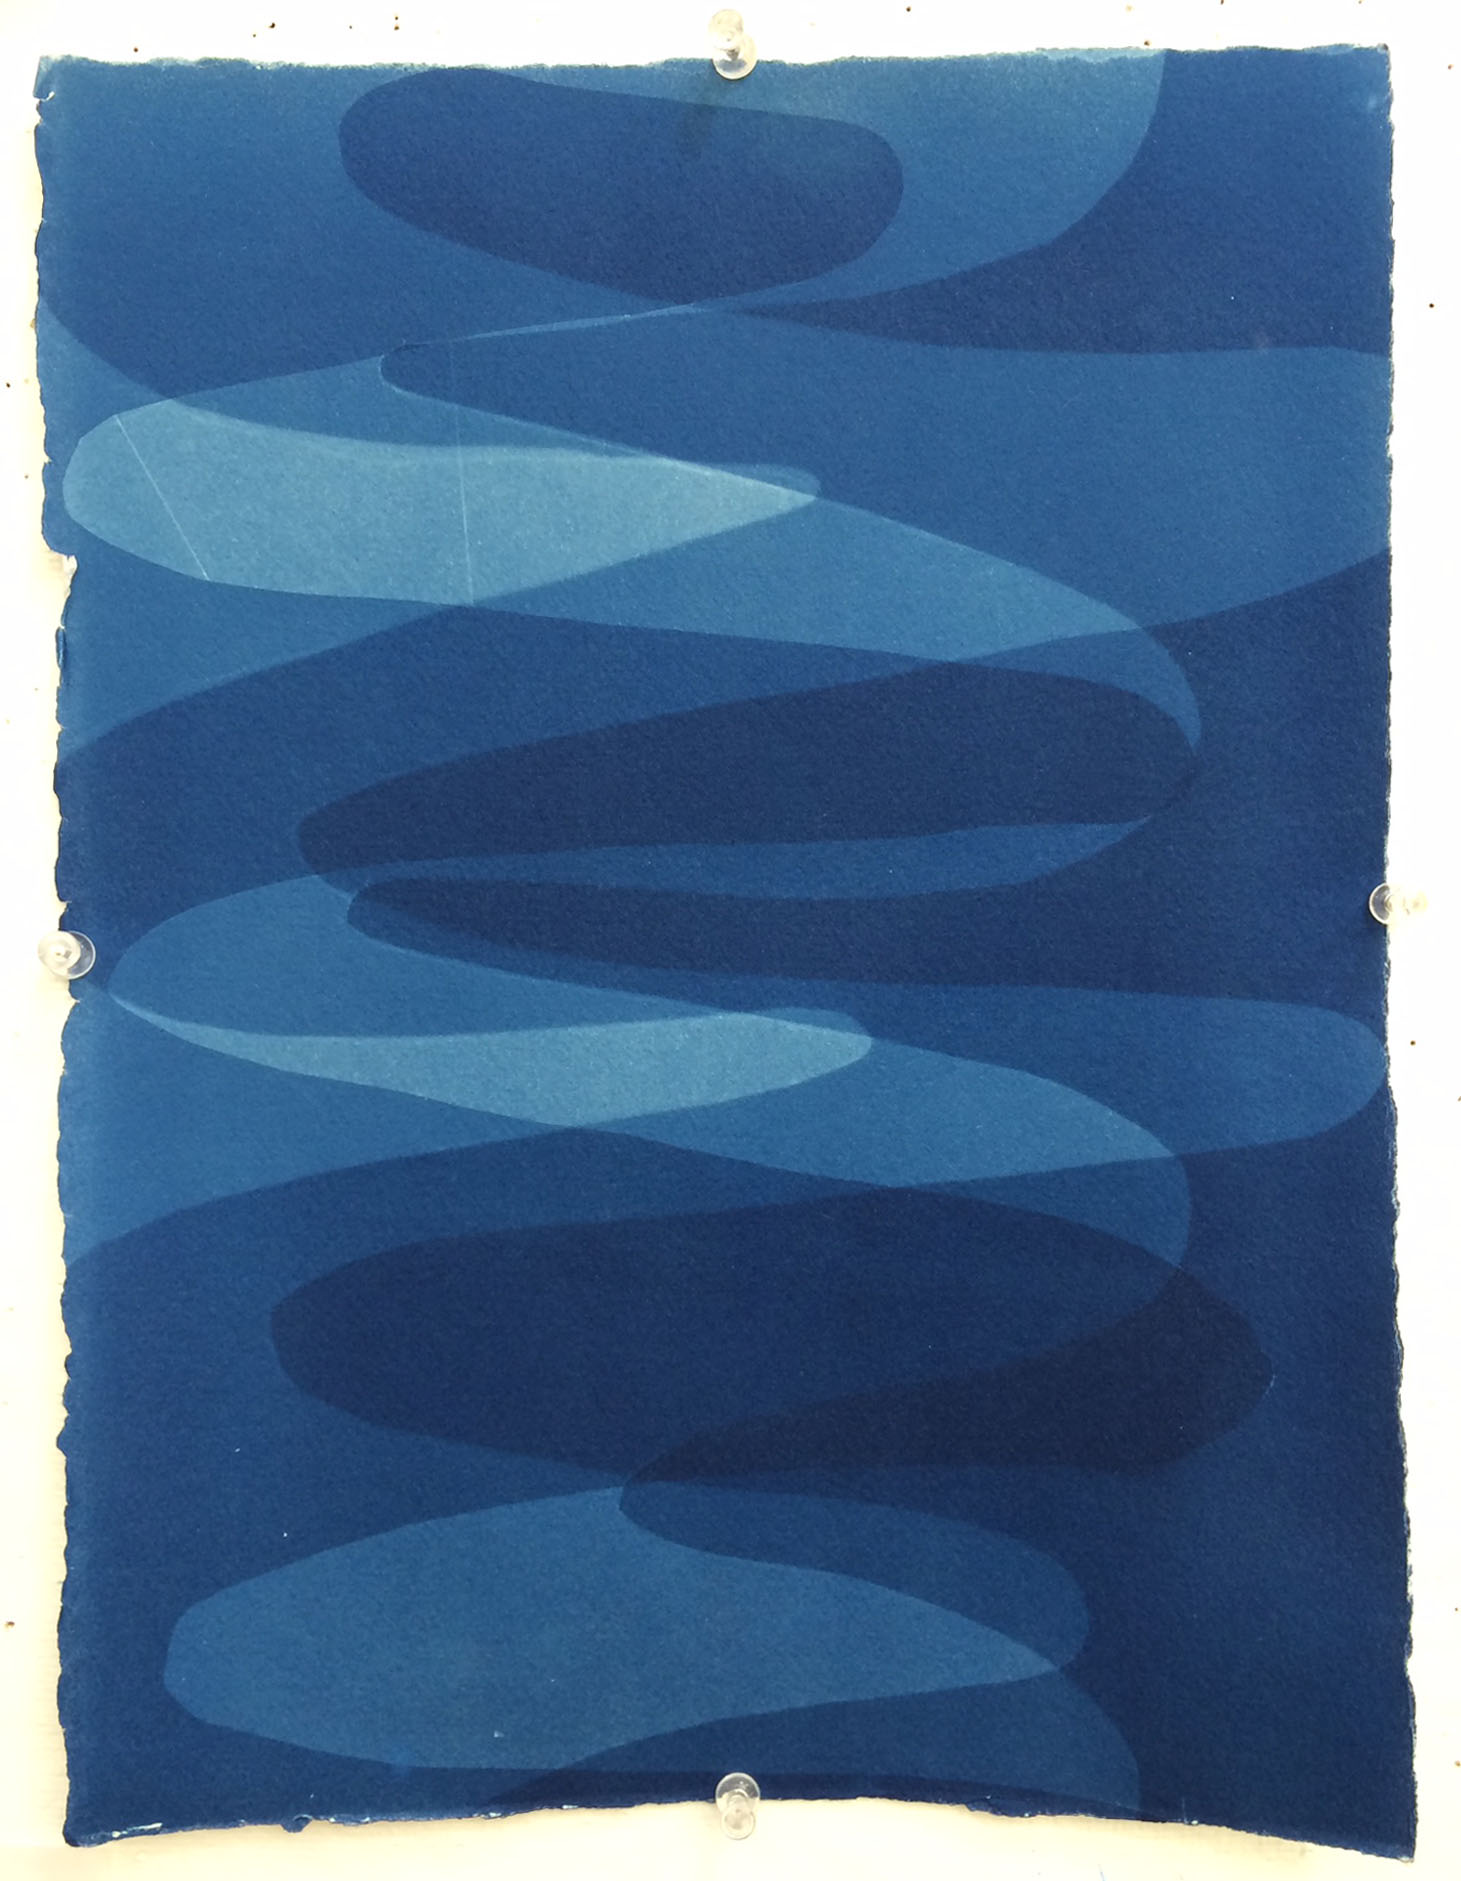 Intersecting Waves , 2014, Cyanotype on Arches paper, 14 x 10.5 inches.